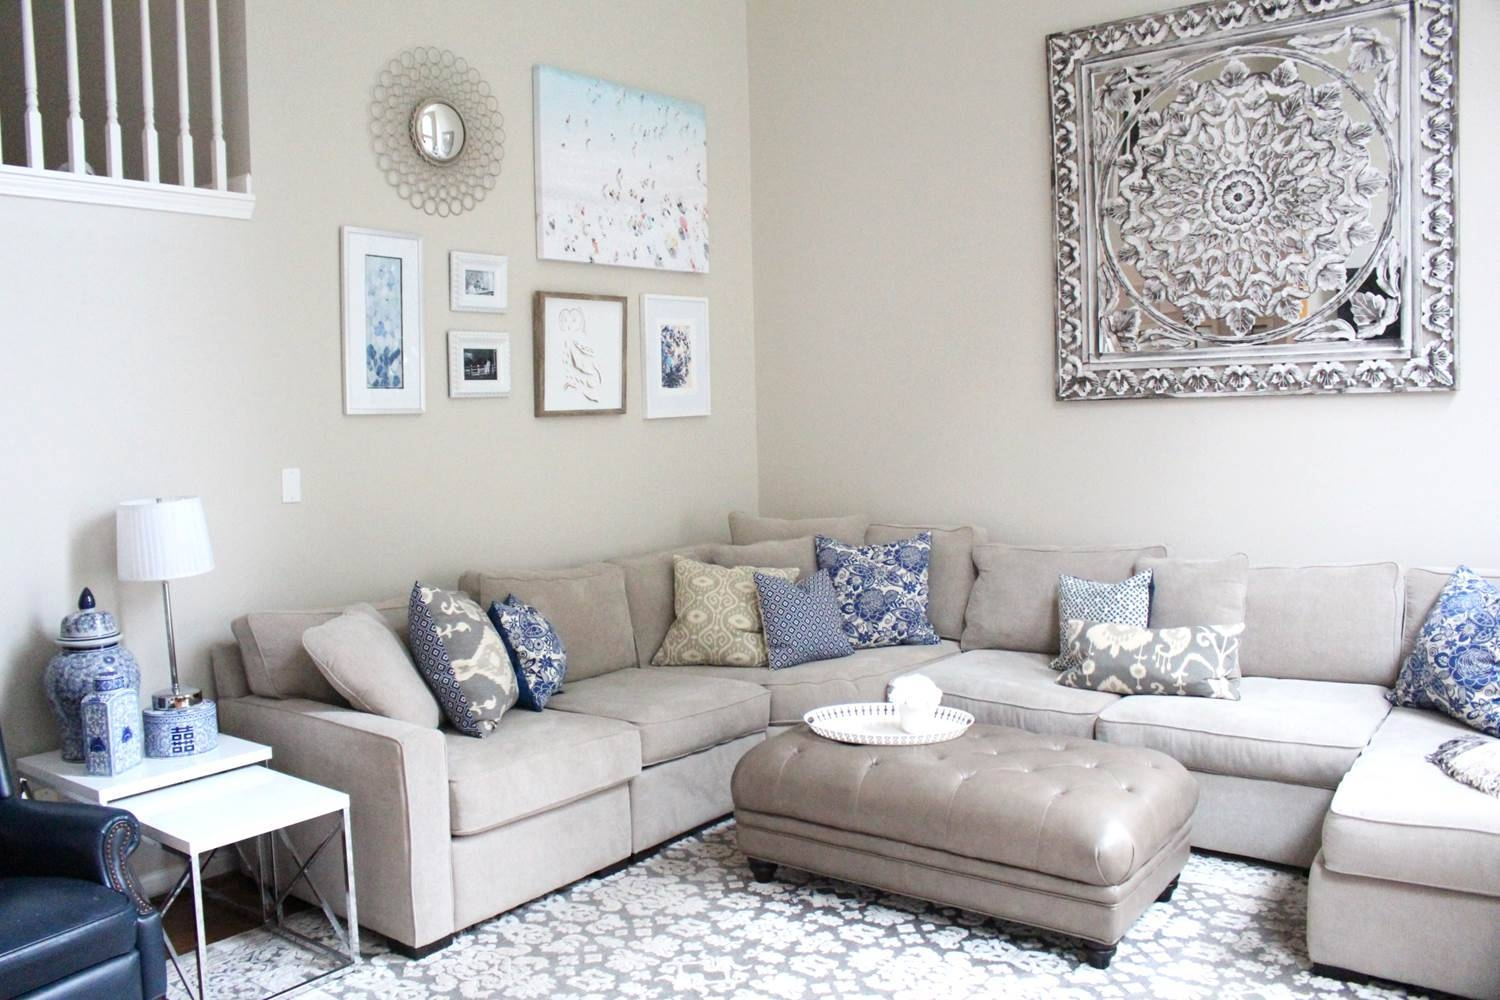 Splendid Wall Art For Small Living Room Decoration Complete Pertaining To Latest Neutral Wall Art (View 8 of 15)